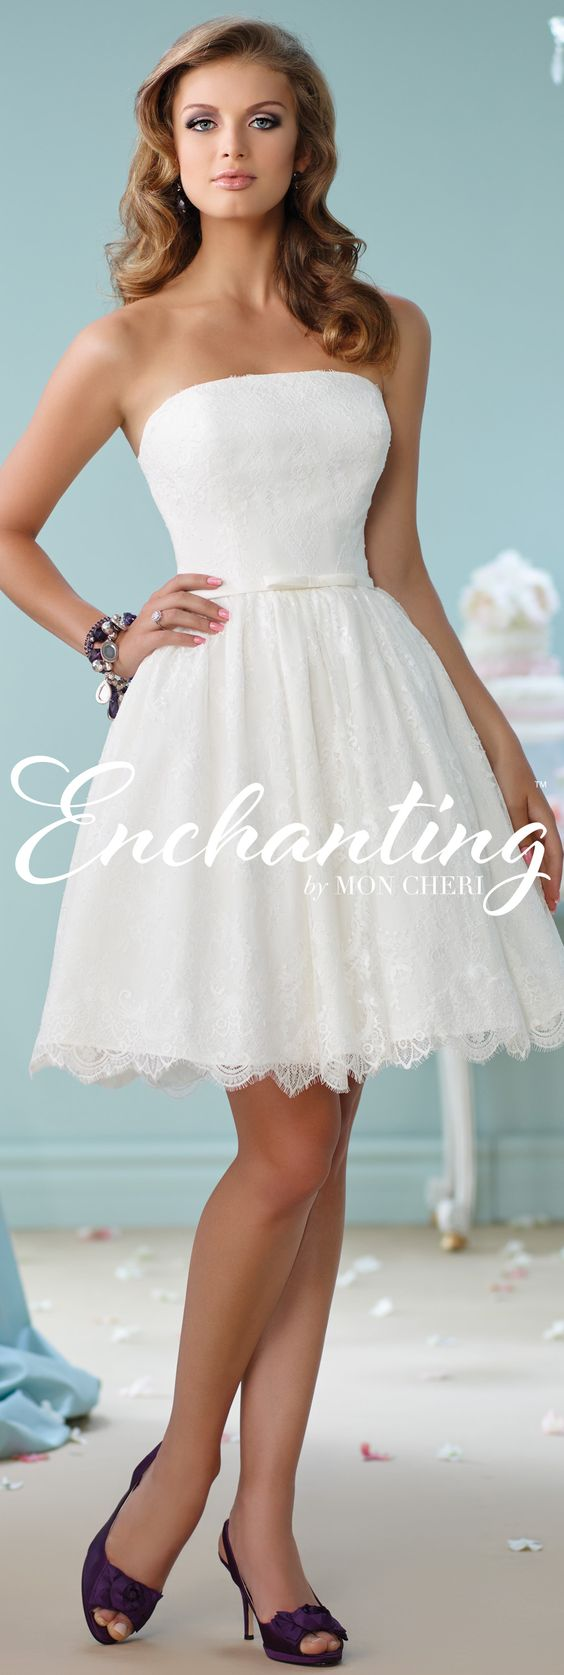 Enchanting by Mon Cheri Spring 2016 ~Style No. 116122 #shortweddingdress